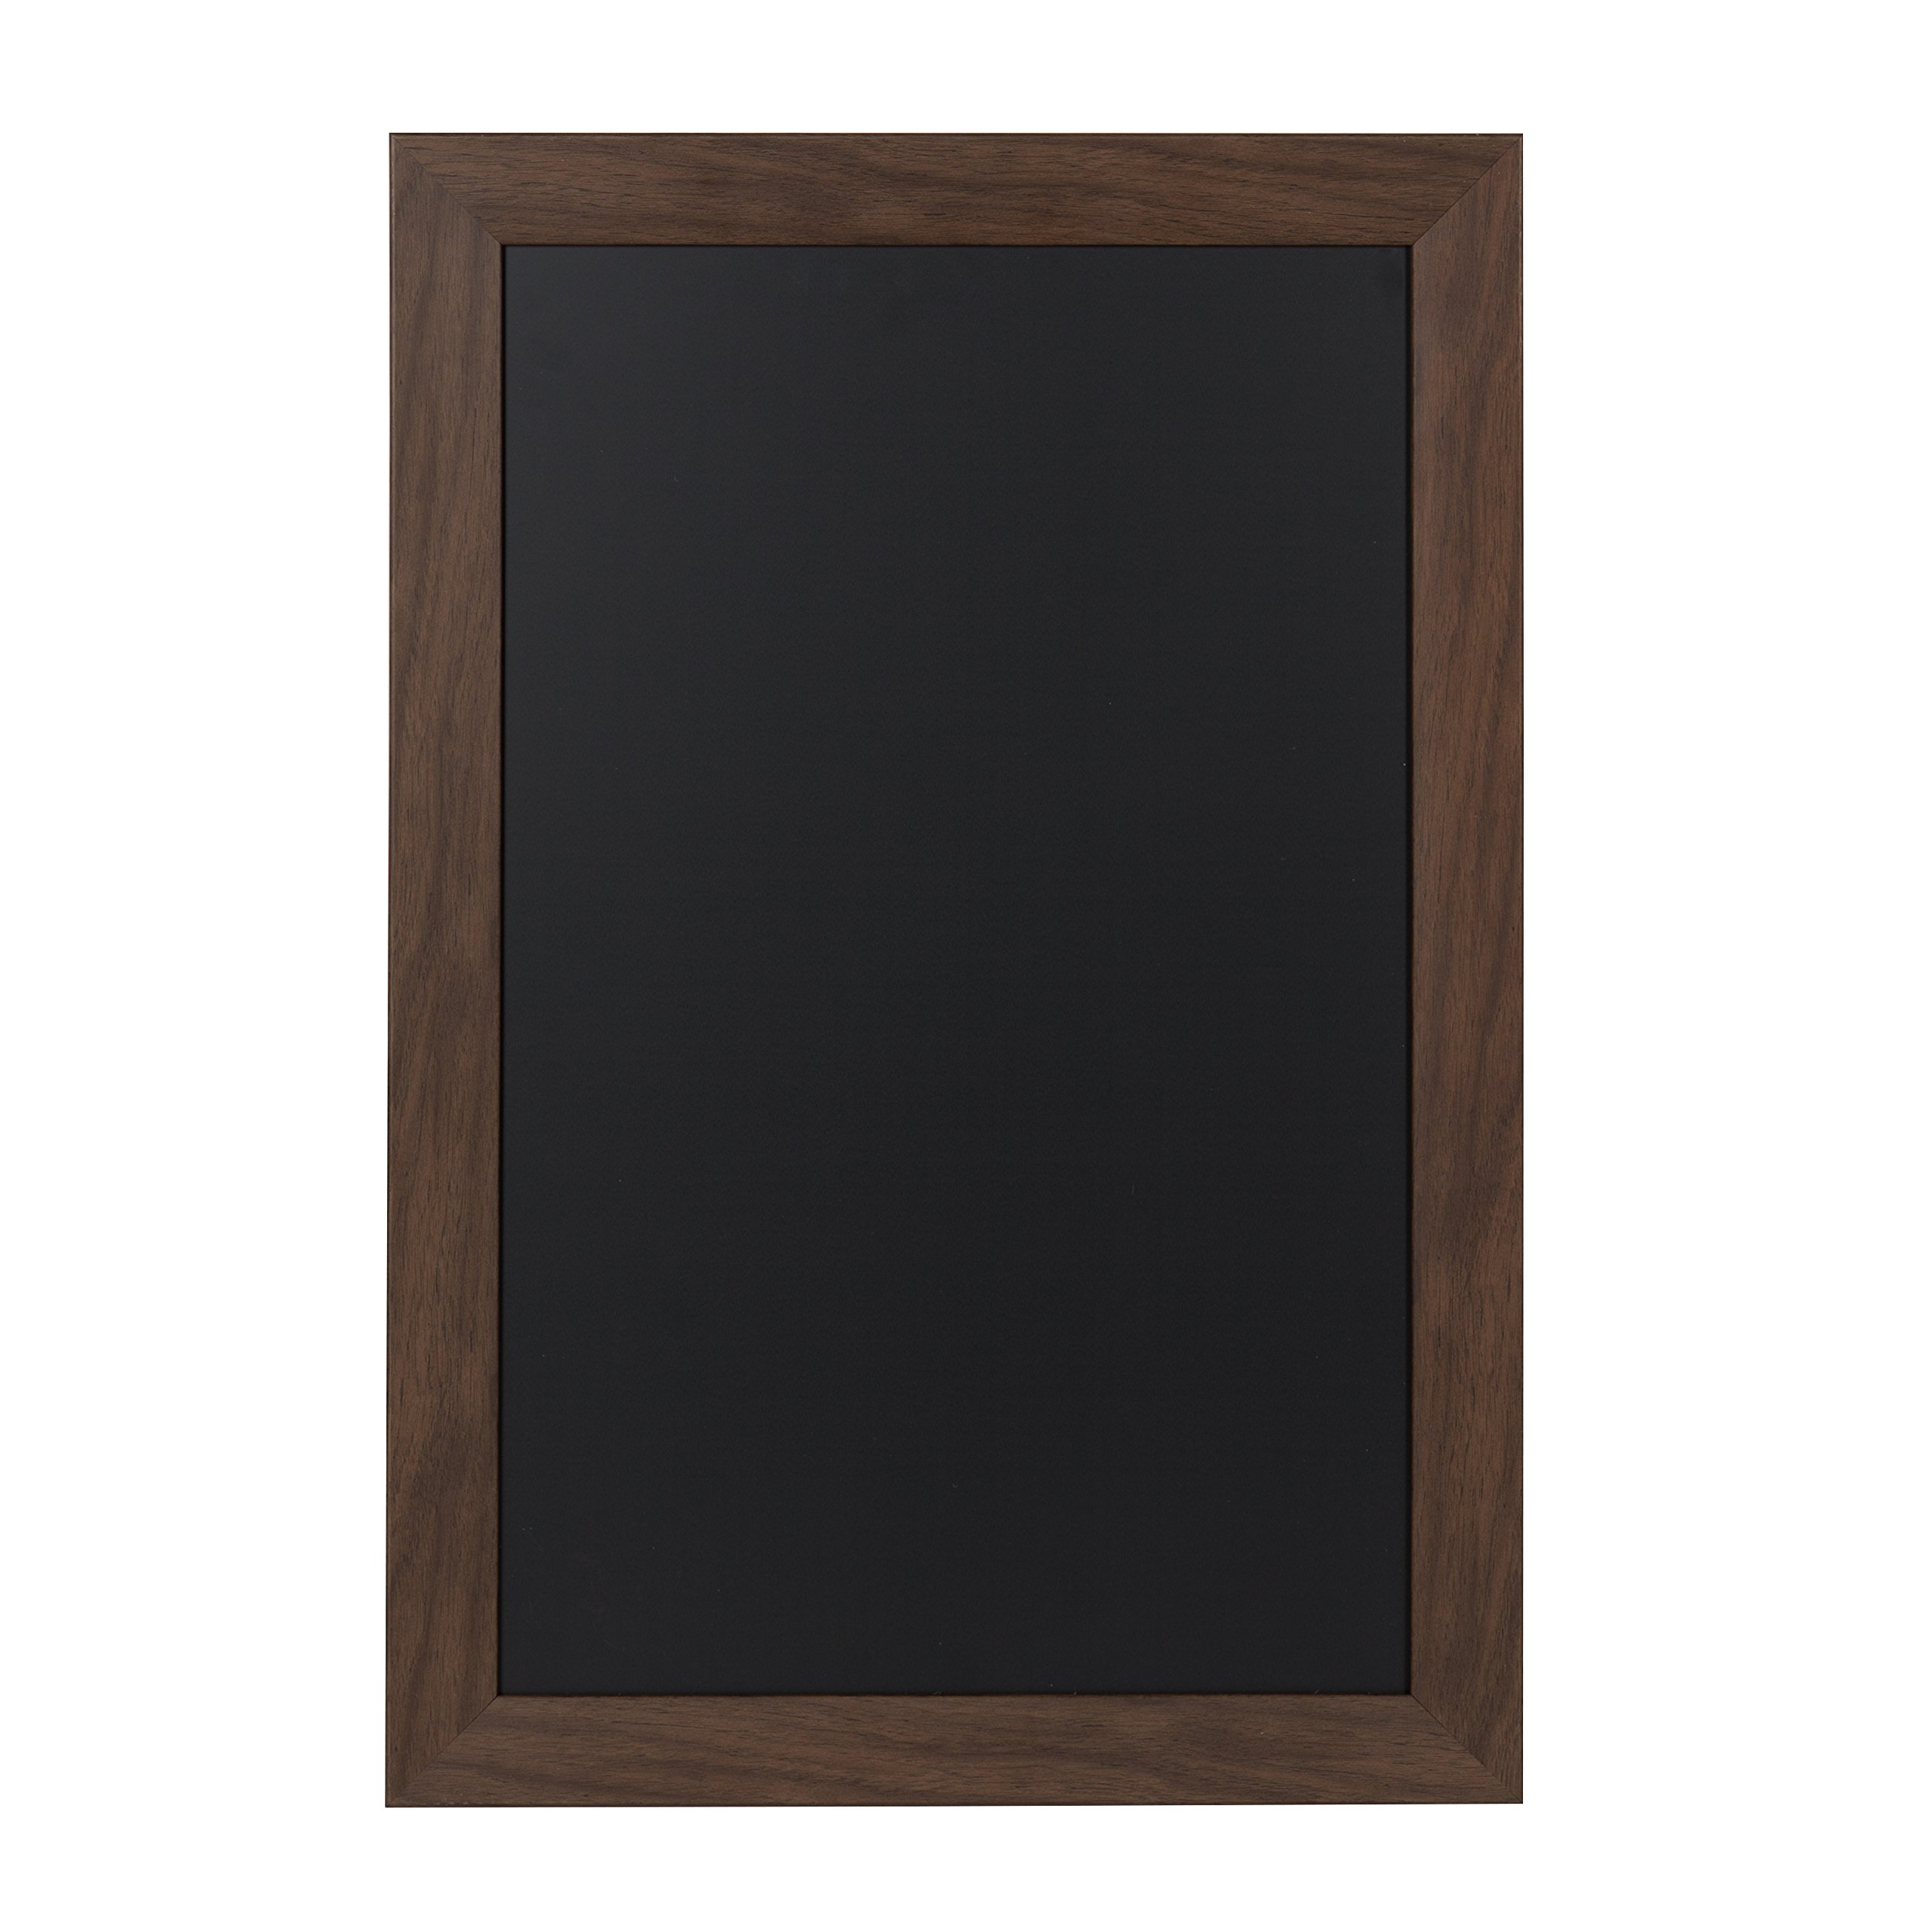 DesignOvation Beatrice Framed Magnetic Chalkboard, 18x27, Walnut Brown by DesignOvation